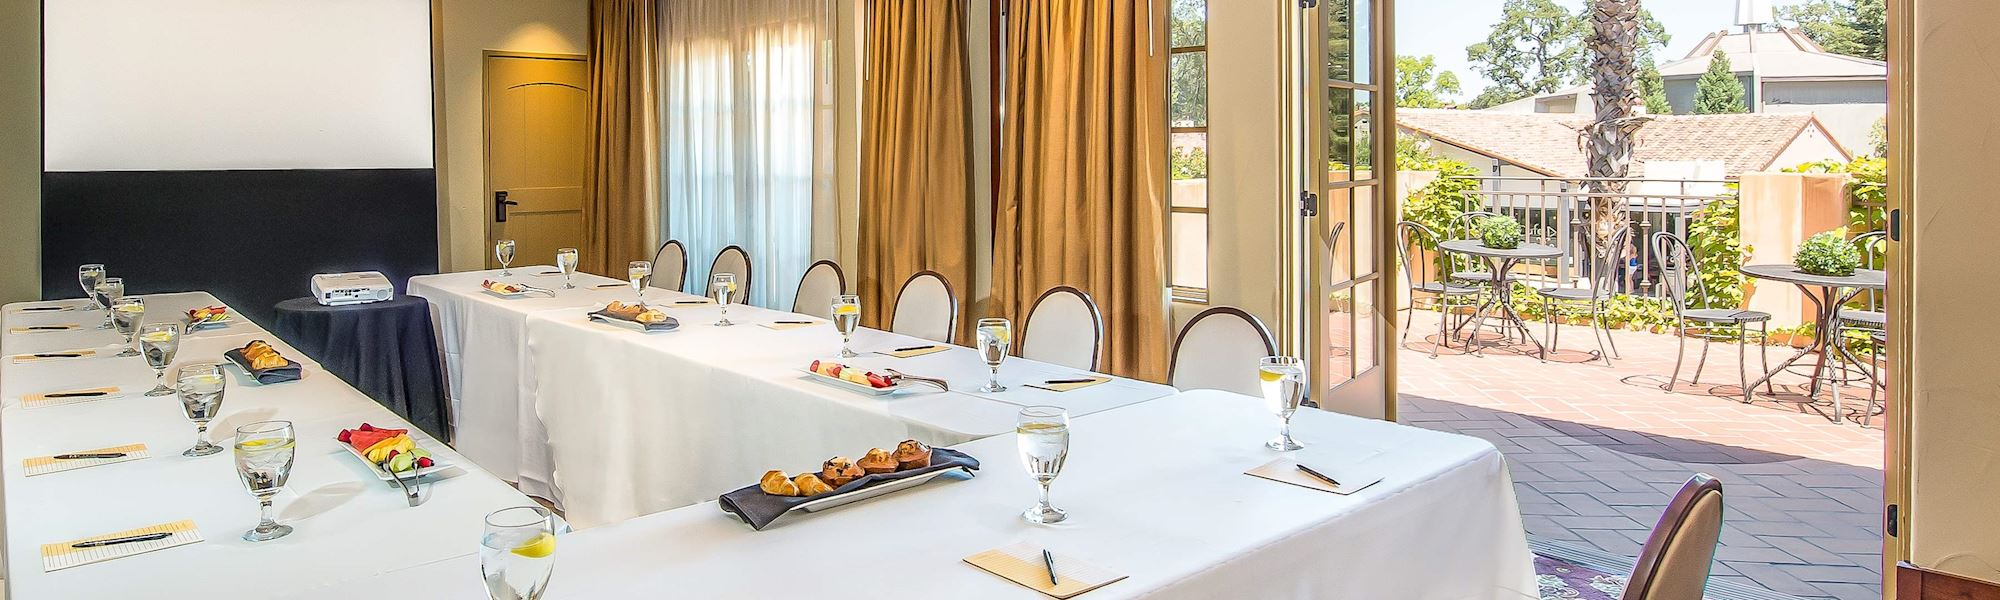 Meetings Facilities at Hotel Los Gatos